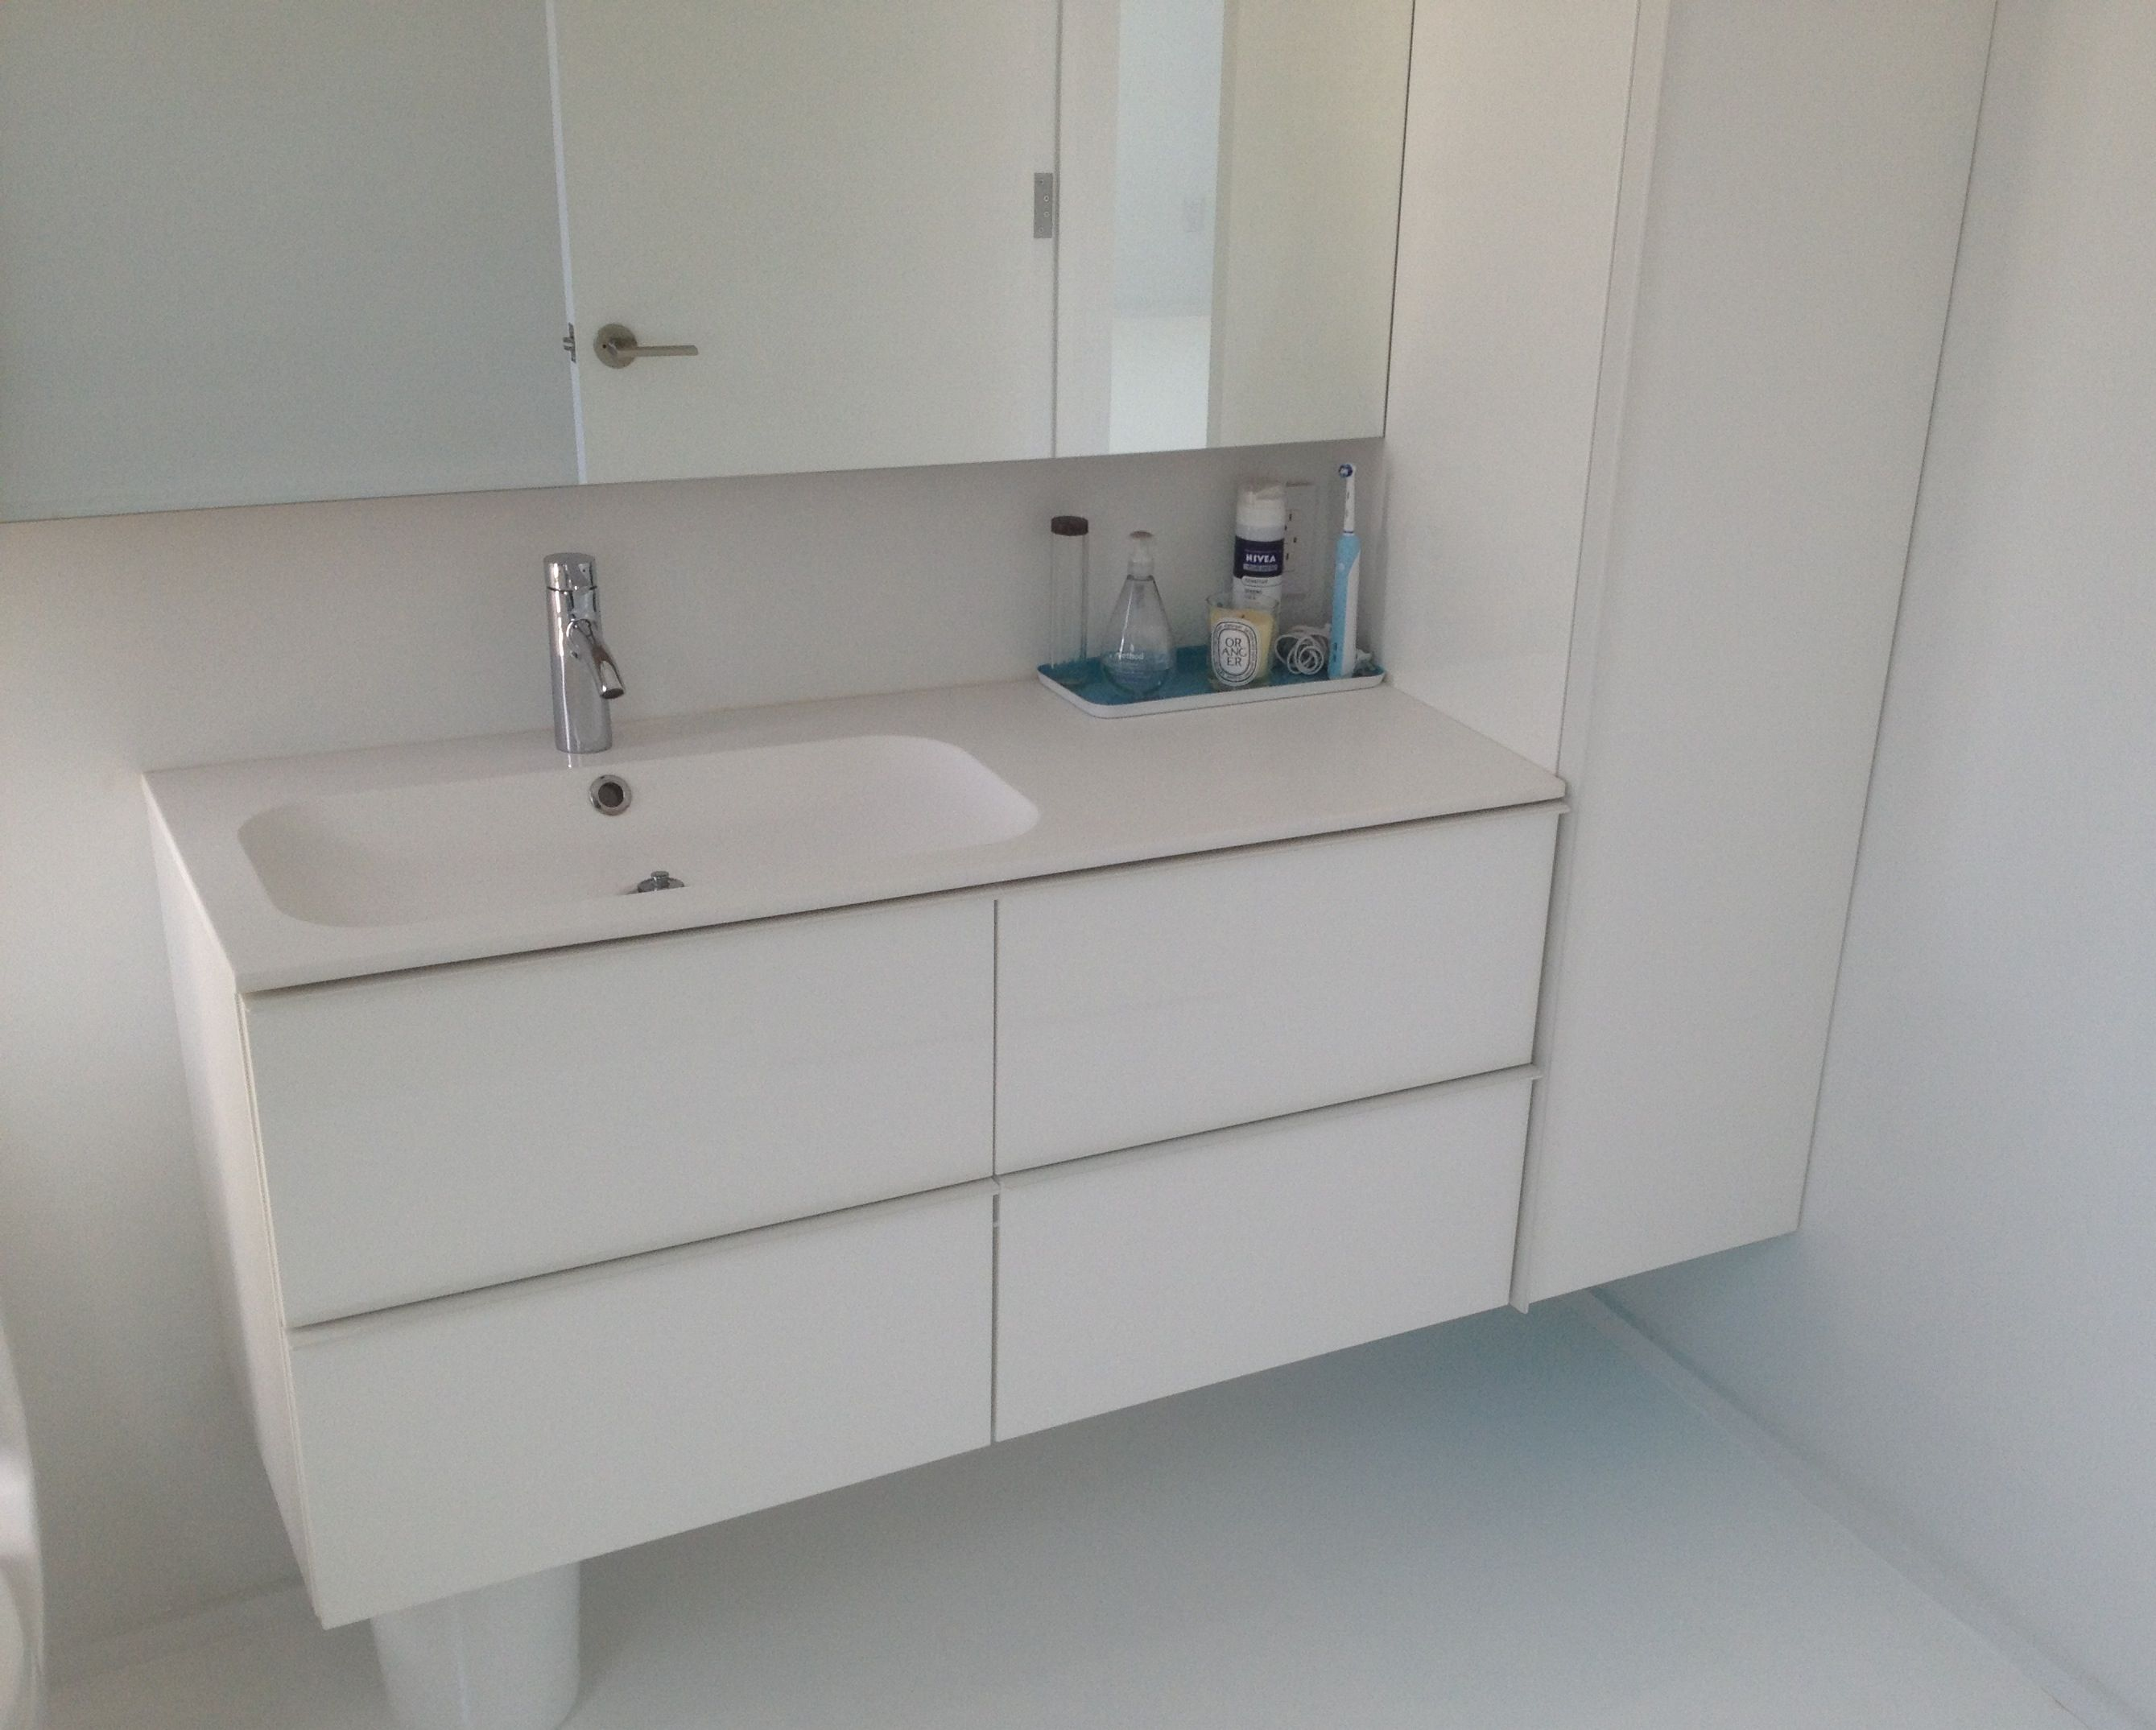 Glorious Floating White Acrylic Bathroom Vanities Ikea With Single Undermount Sink Added Cabinets Designs In Modern